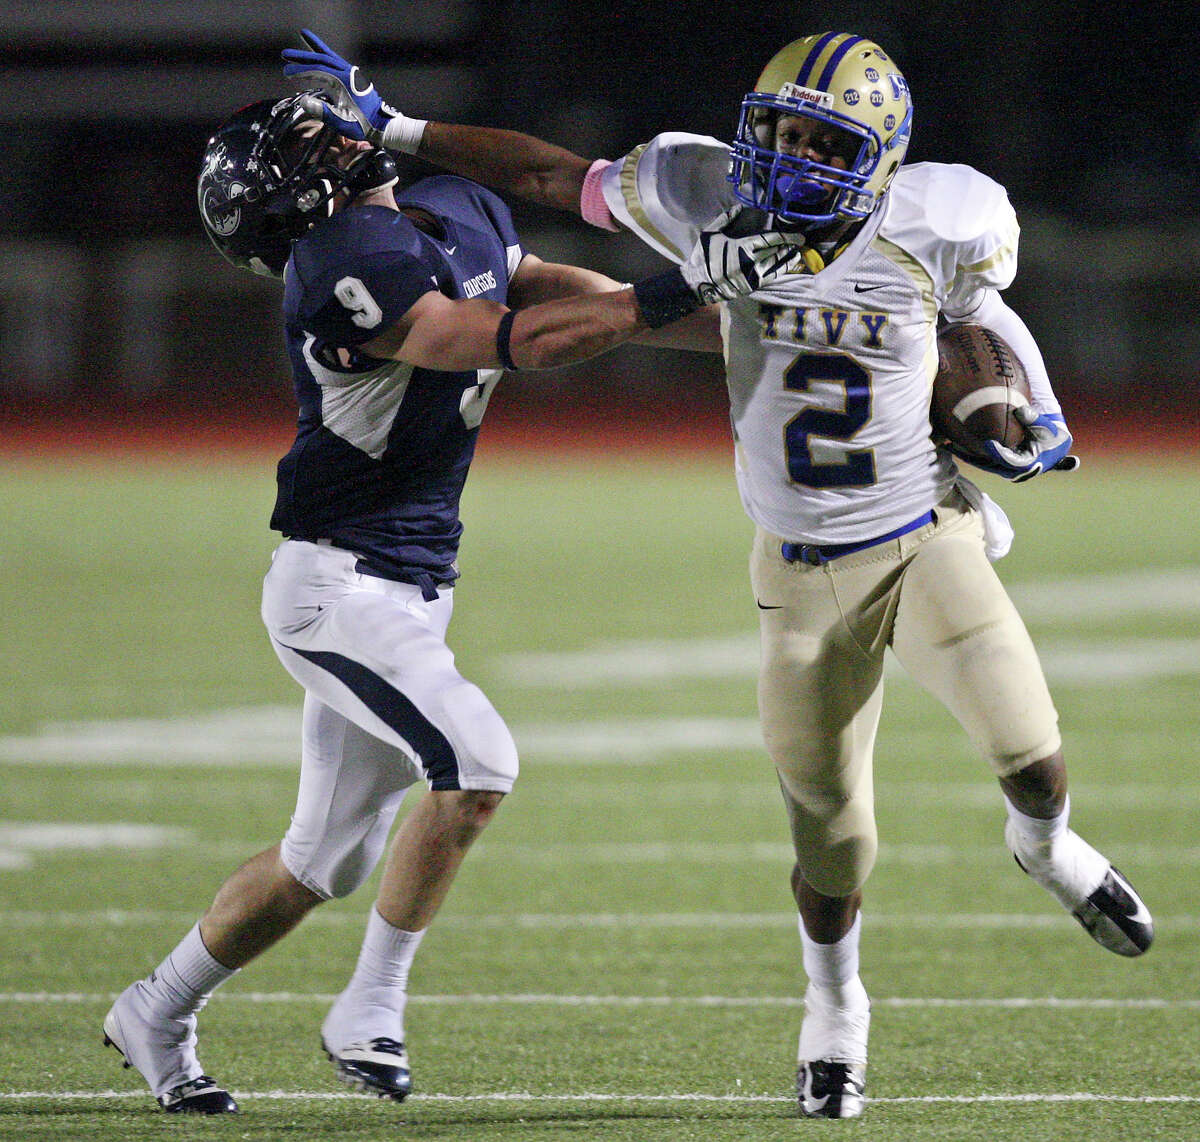 Kerrville Tivy's Will Stuckey stiff-arms Boerne Champion's Liam Brennan during first half action Friday Oct. 12, 2012 at Boerne Independent School District Stadium in Boerne, TX.